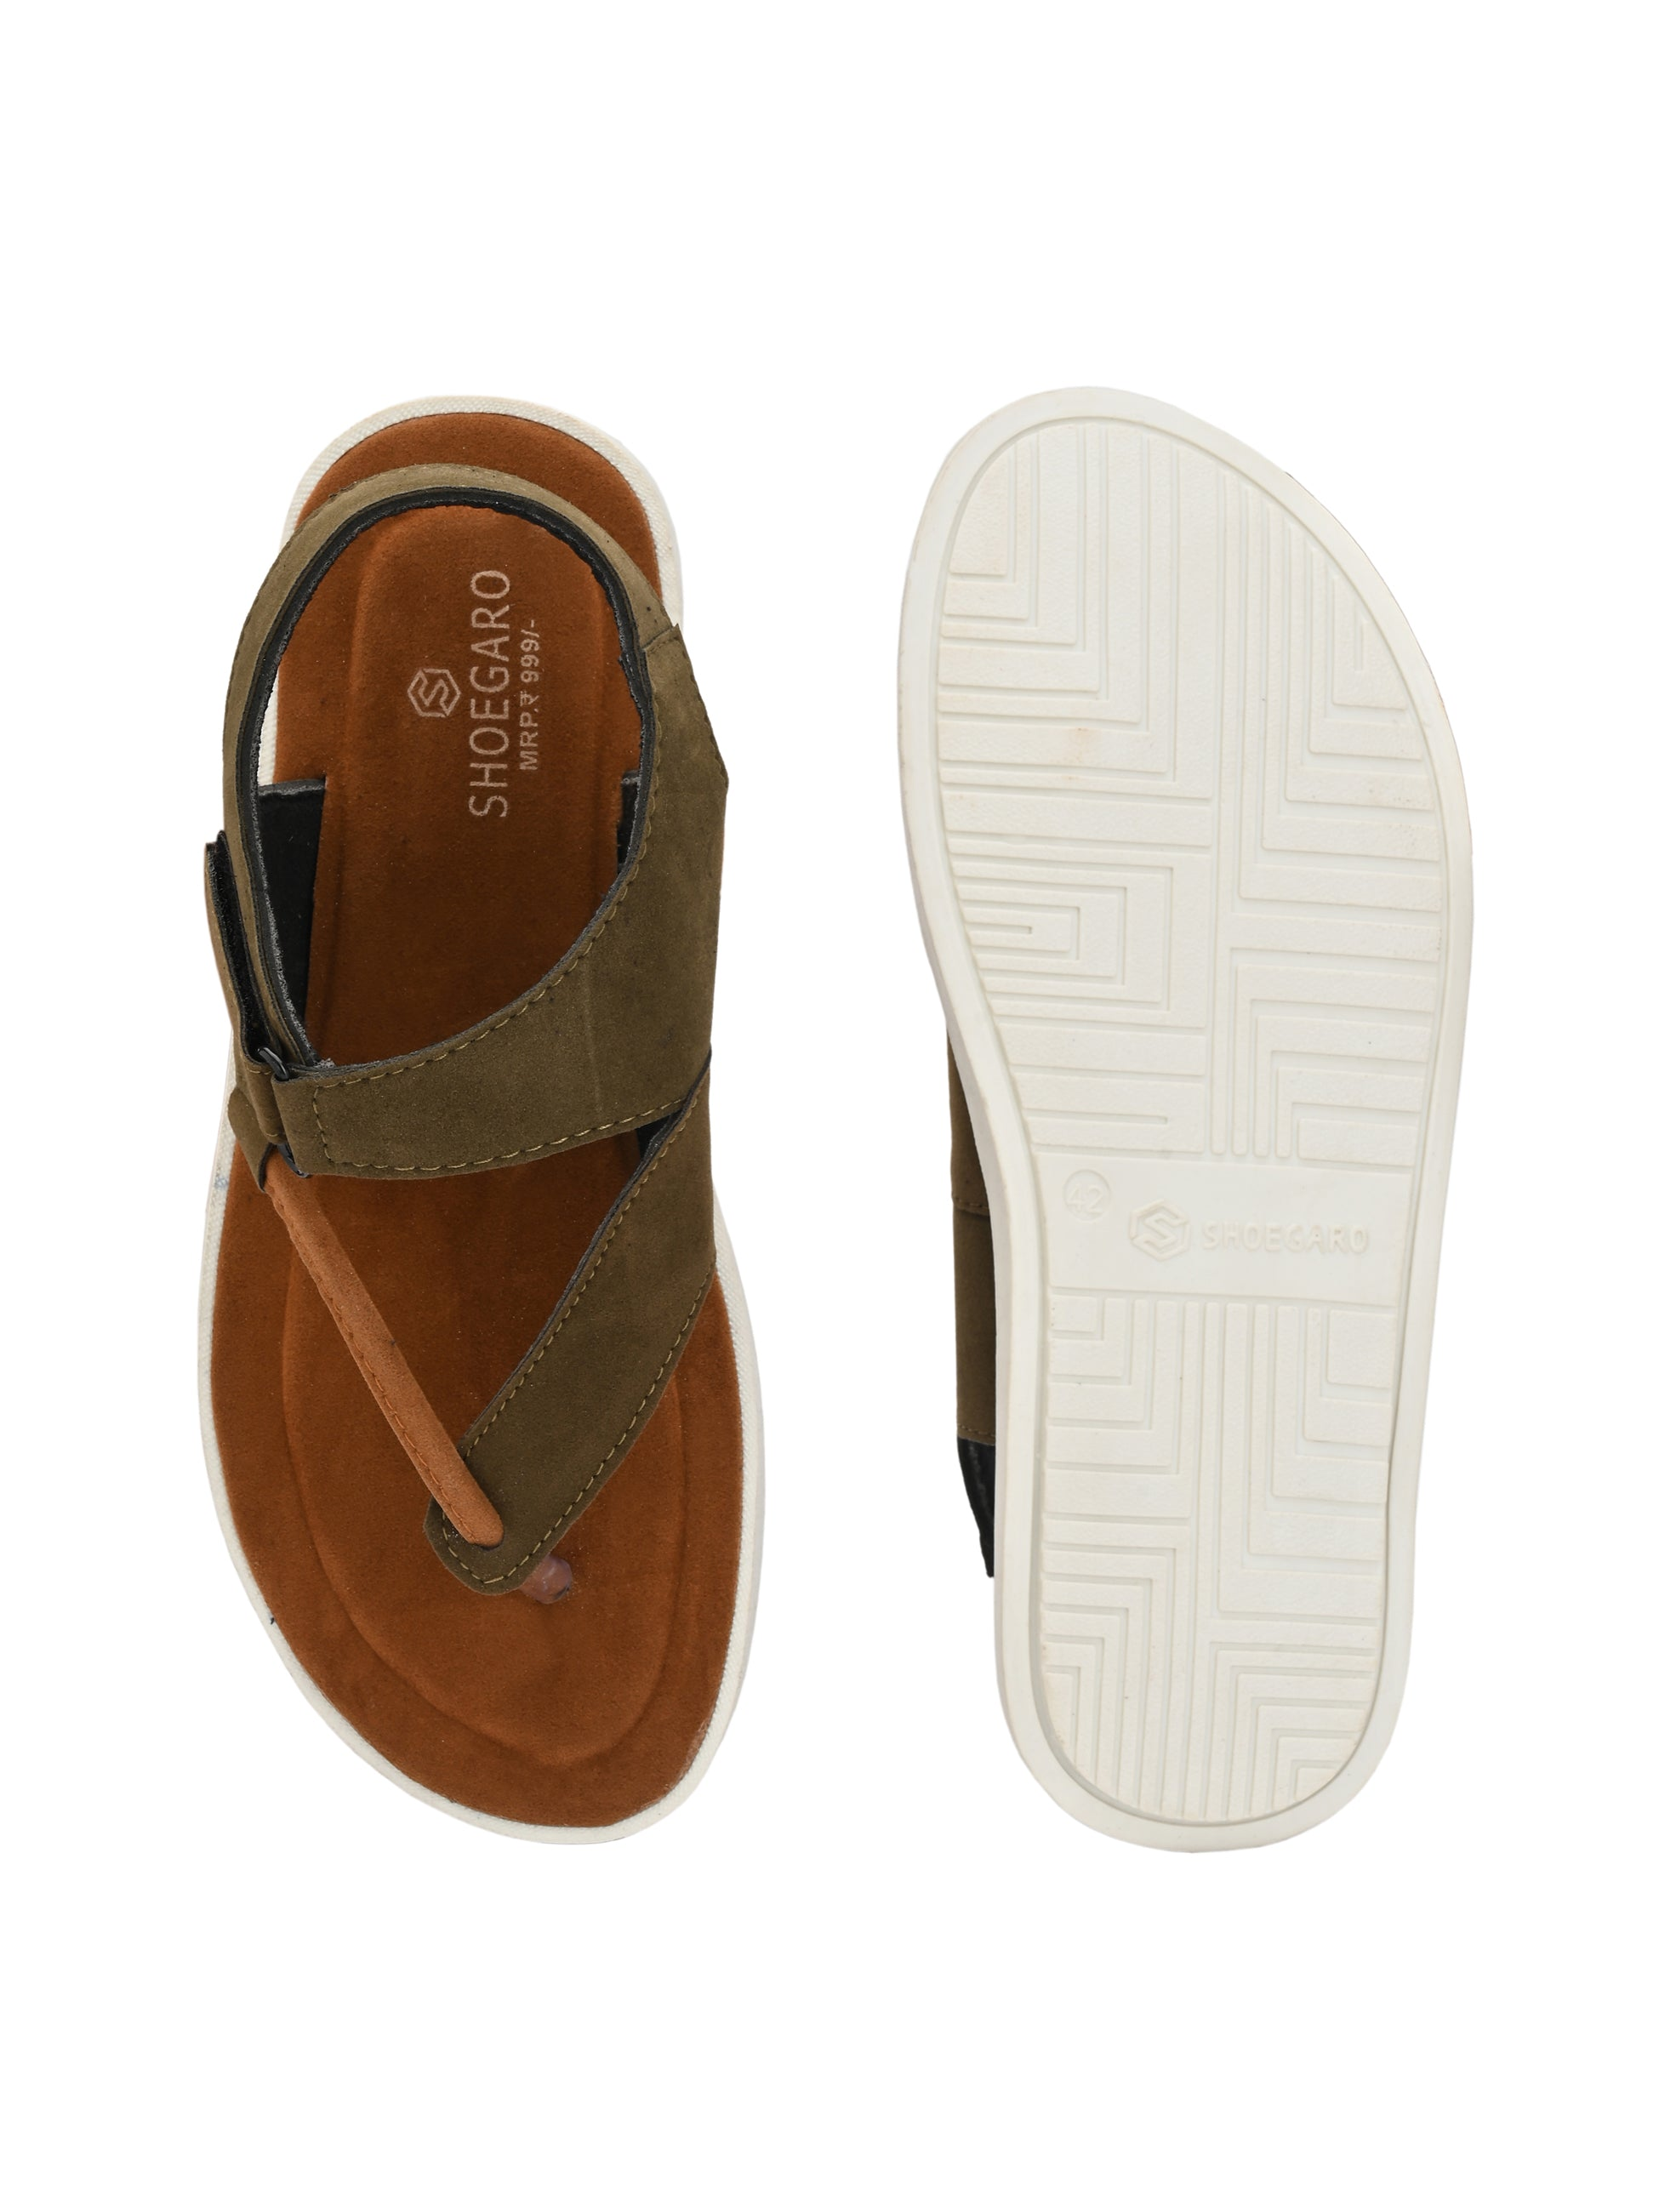 Bichrome Thong Strip Sandal - shoegaro